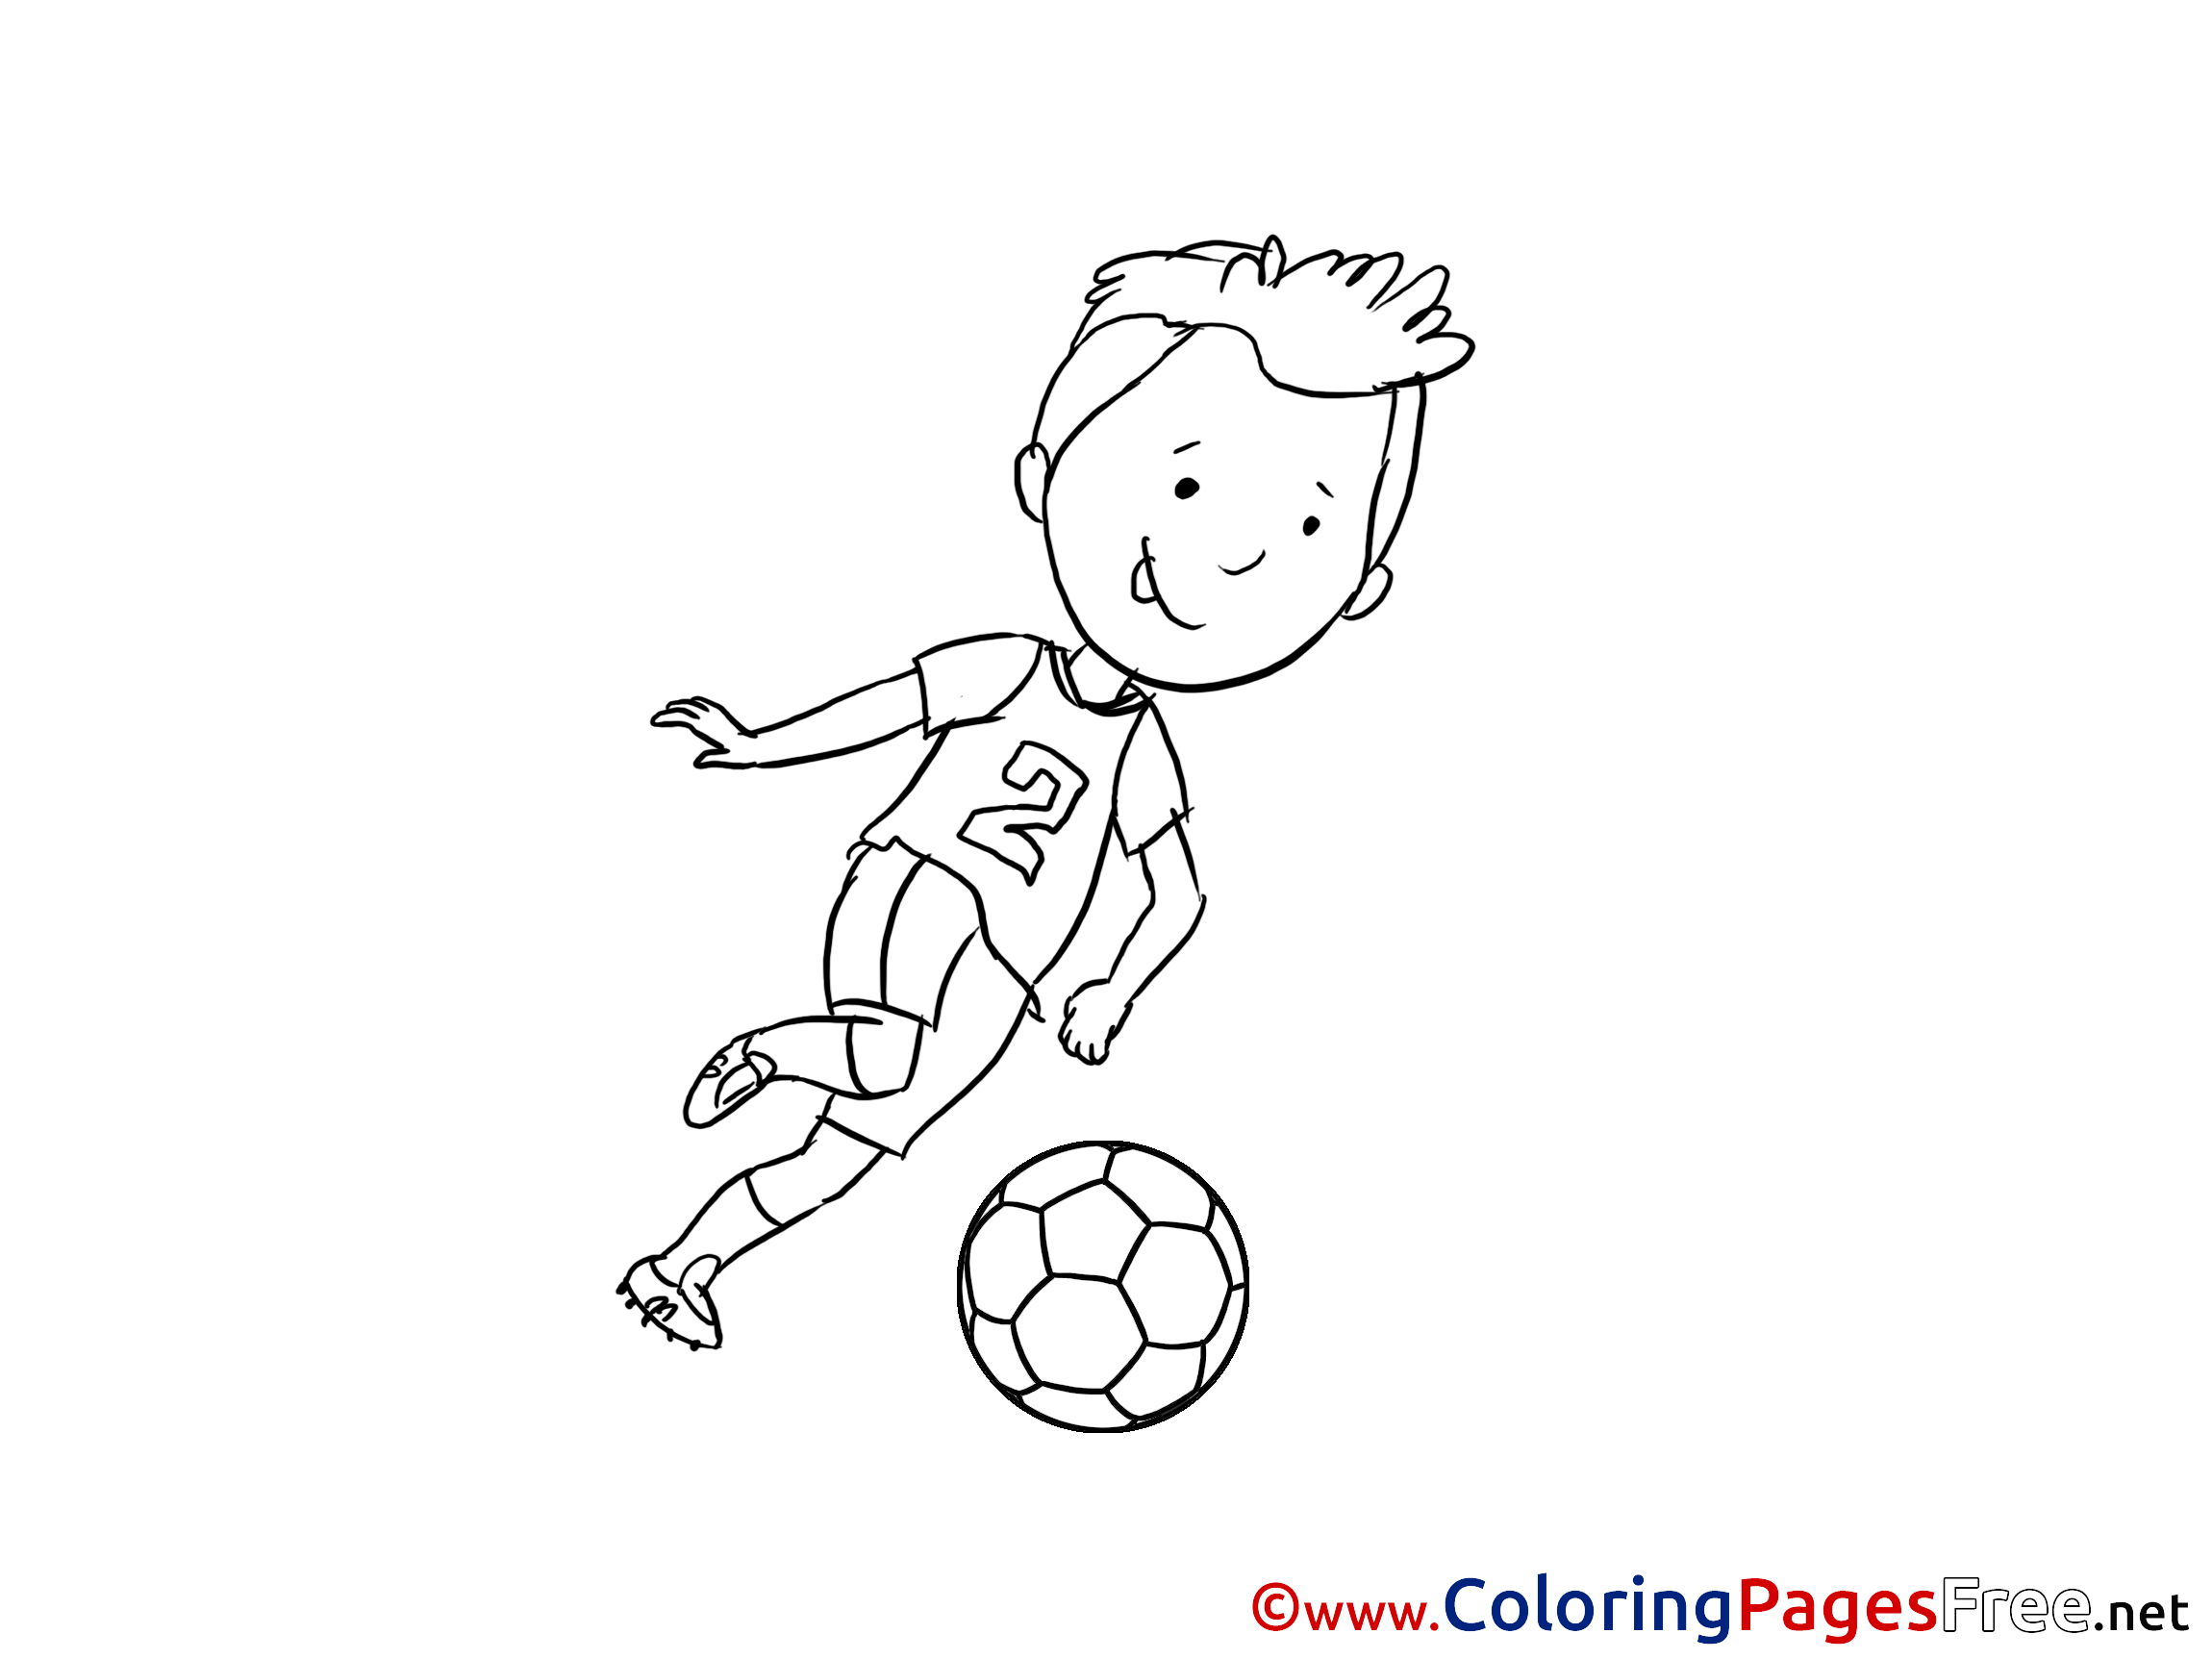 soccer coloring pages for preschoolers - photo#16